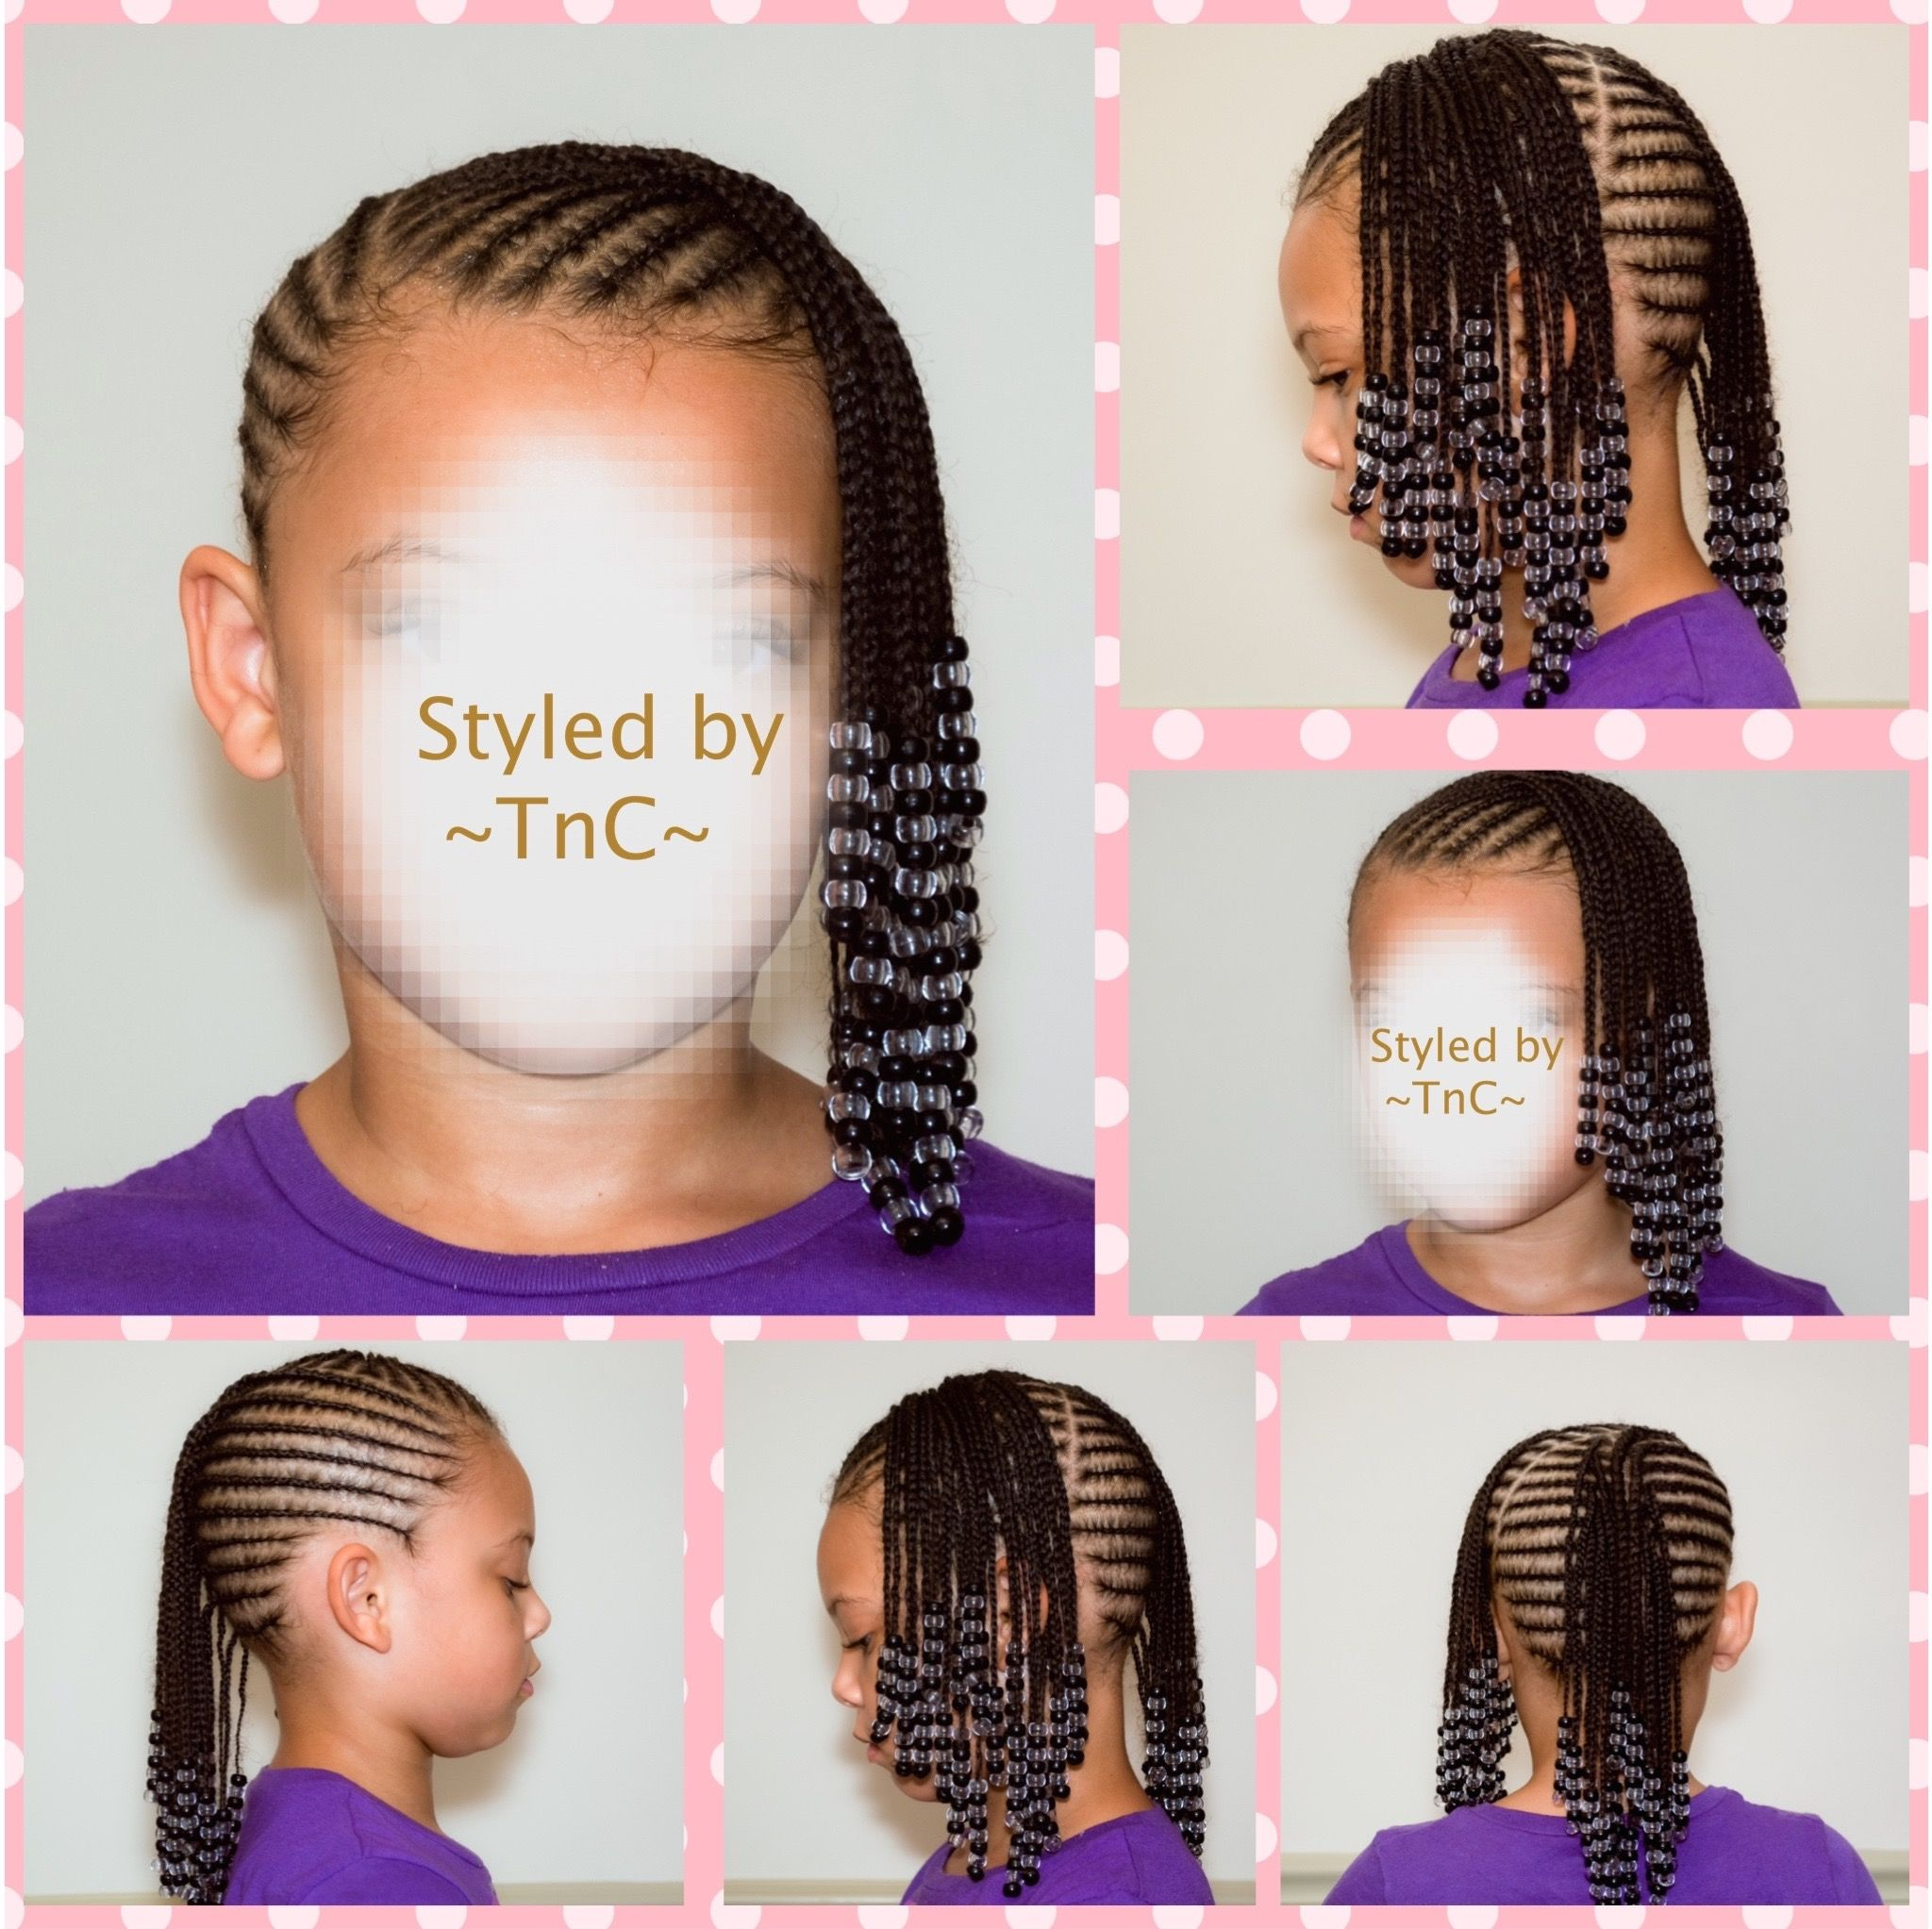 Cute braid hairstyle for kids ~TnC~ #kidsbraids ...